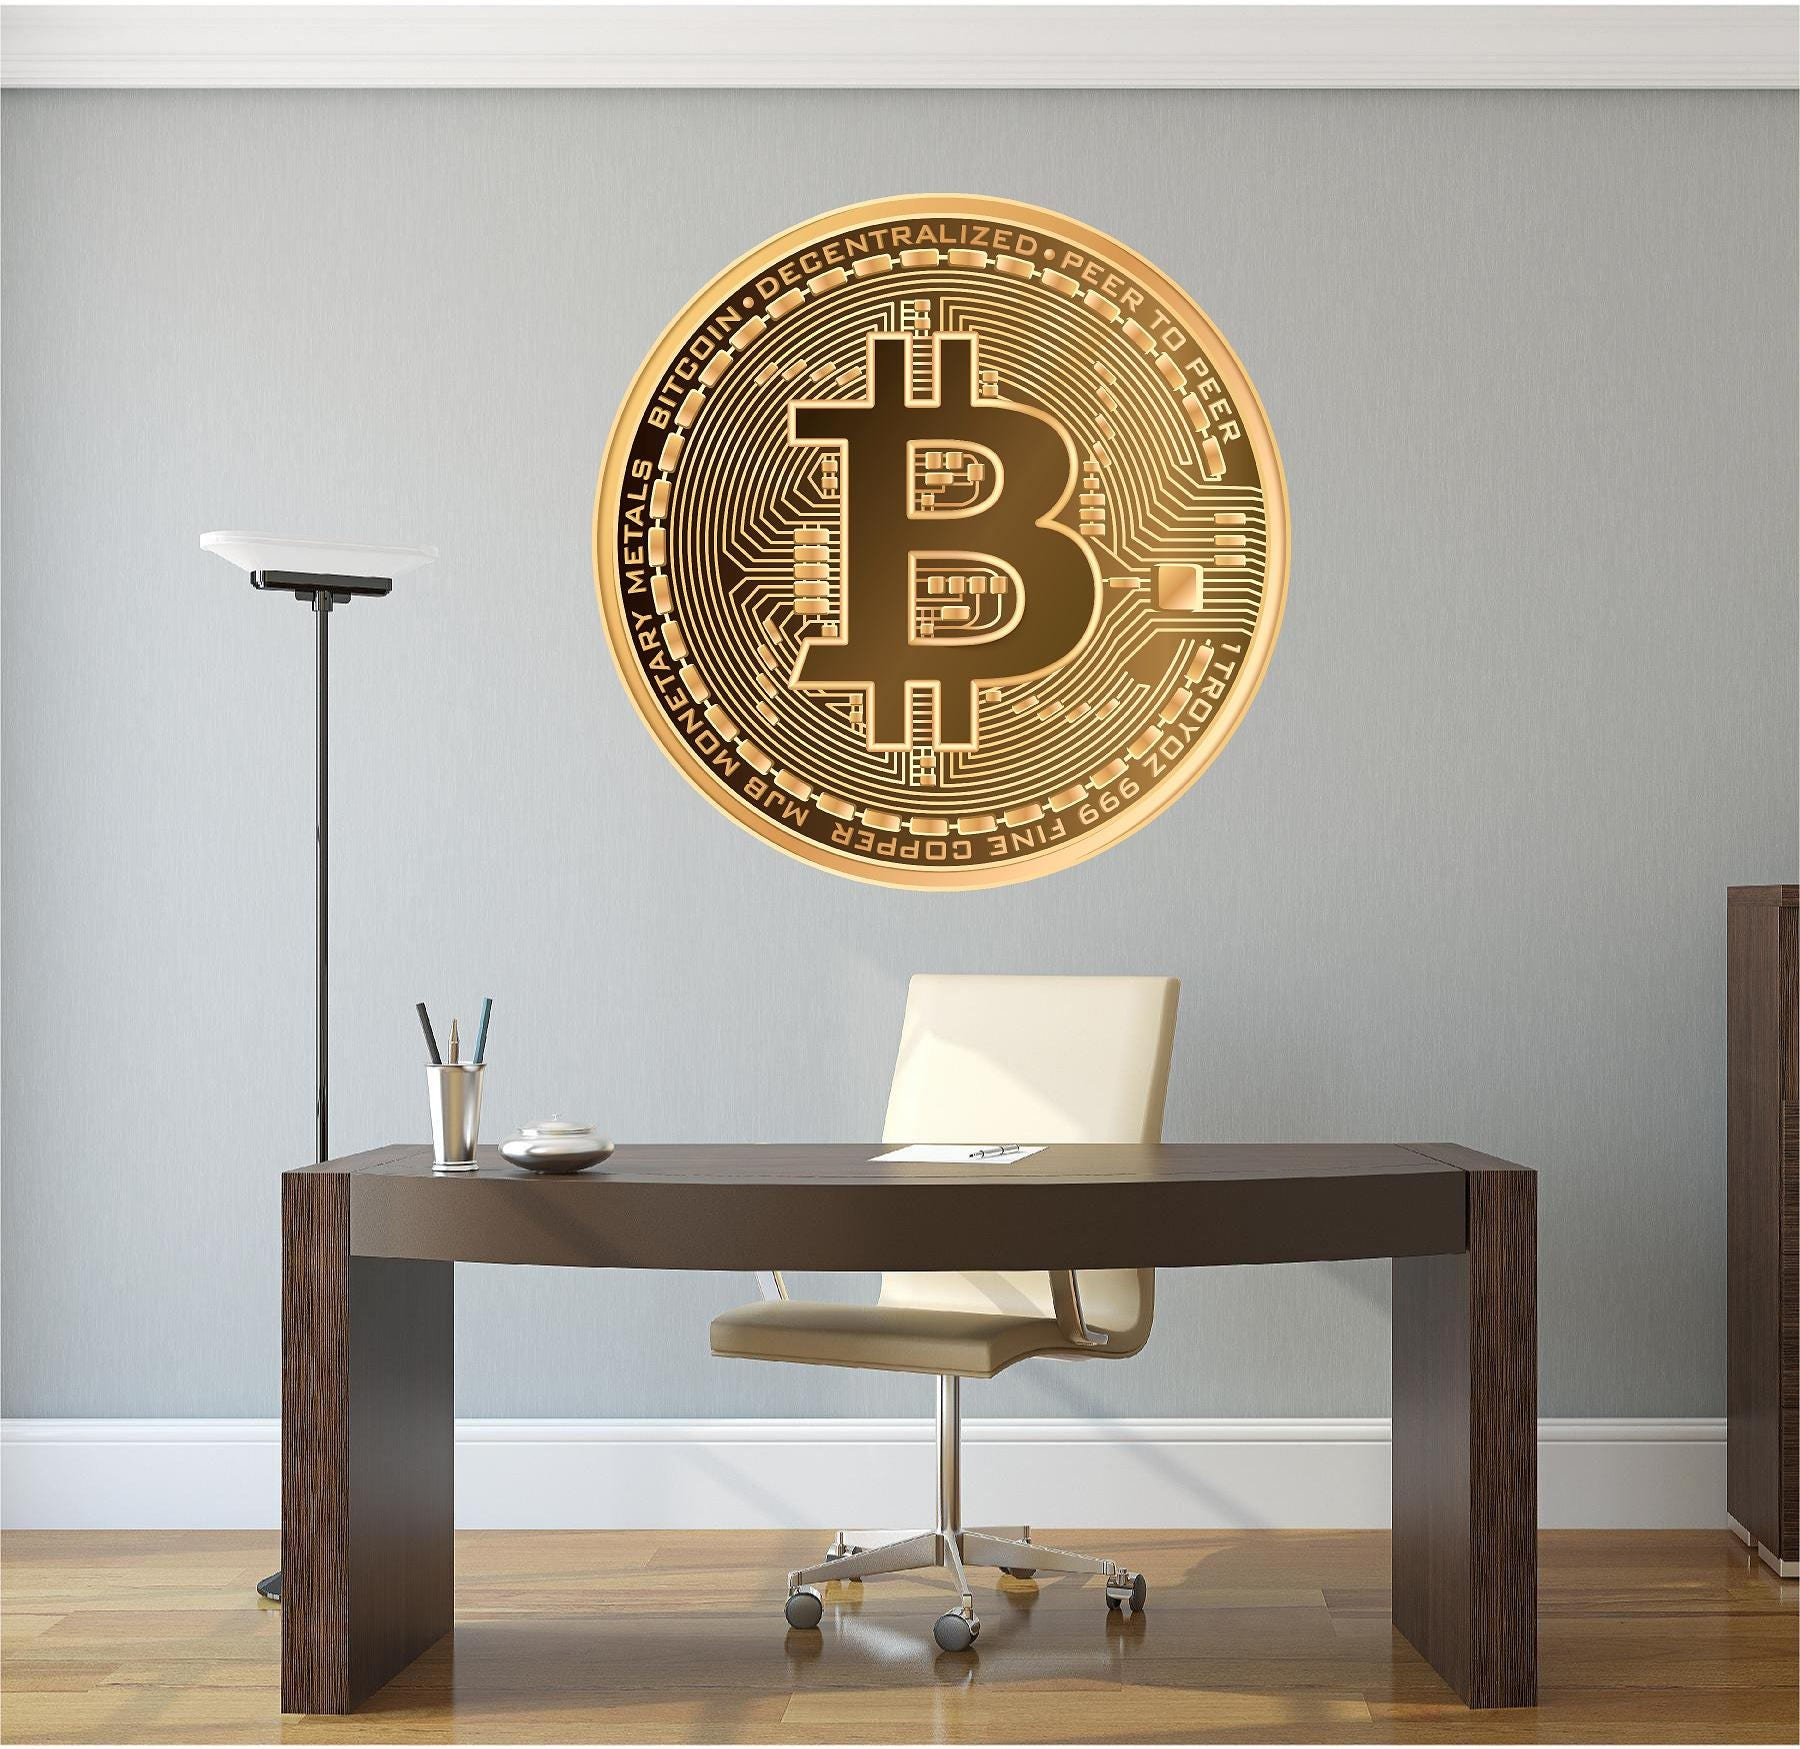 Bitcoin Removable Vinyl Wall Decal, Crypto Currency, Crypto, Etherium,  Litecoin, BTC, Money Logo, Home Office Decor, Gift for Him, Christmas